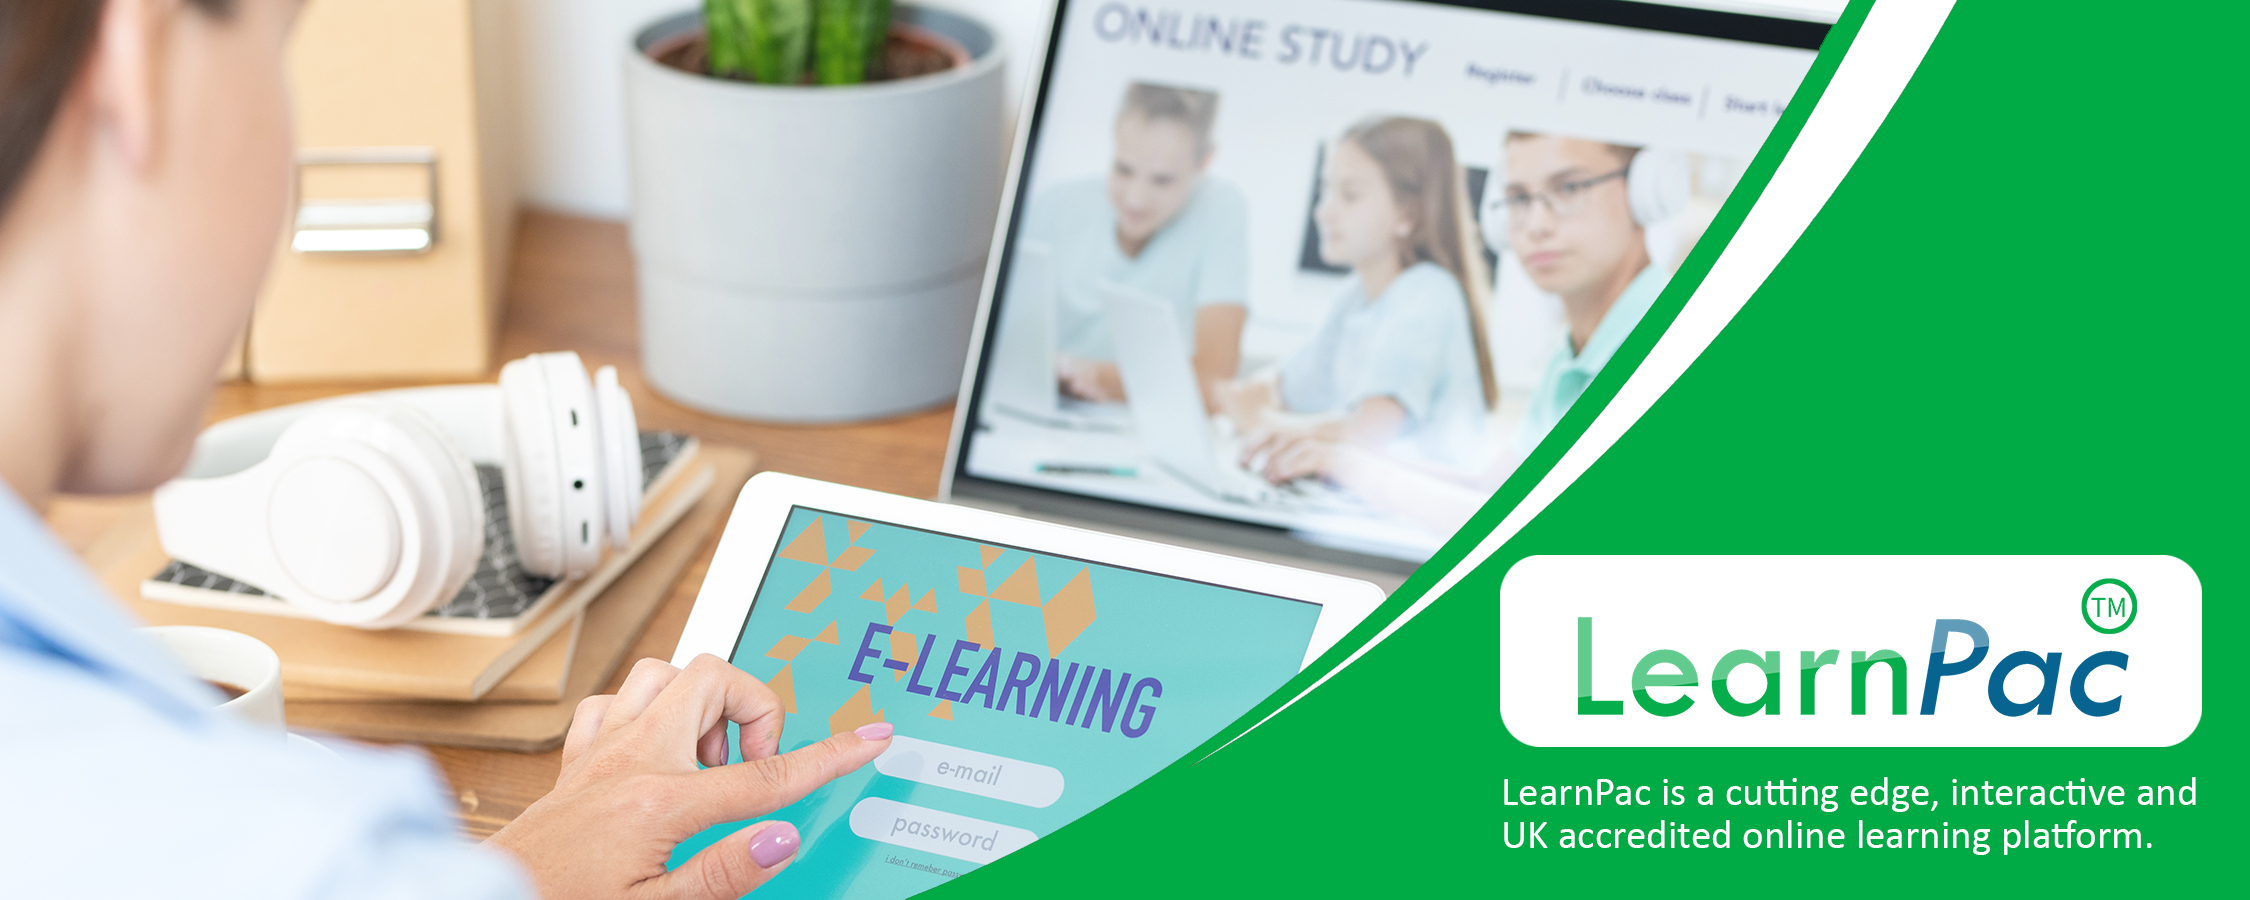 Whistleblowing in Secondary Care - Online Learning Courses - E-Learning Courses - LearnPac Systems UK --